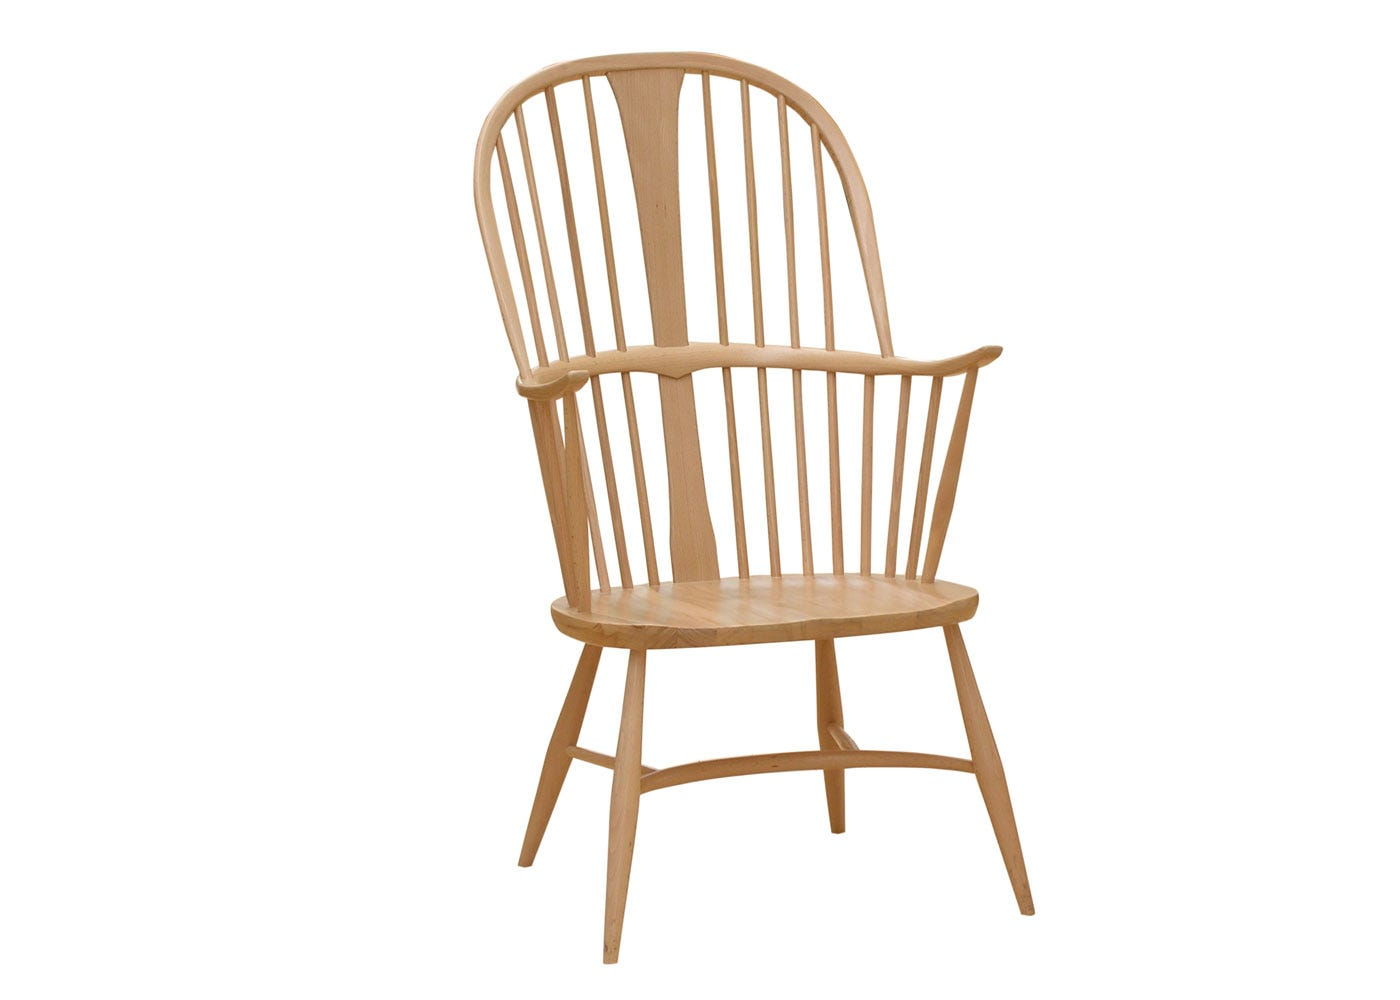 As shown: Originals Chairmakers Chair Beech and Elm - Side Profile